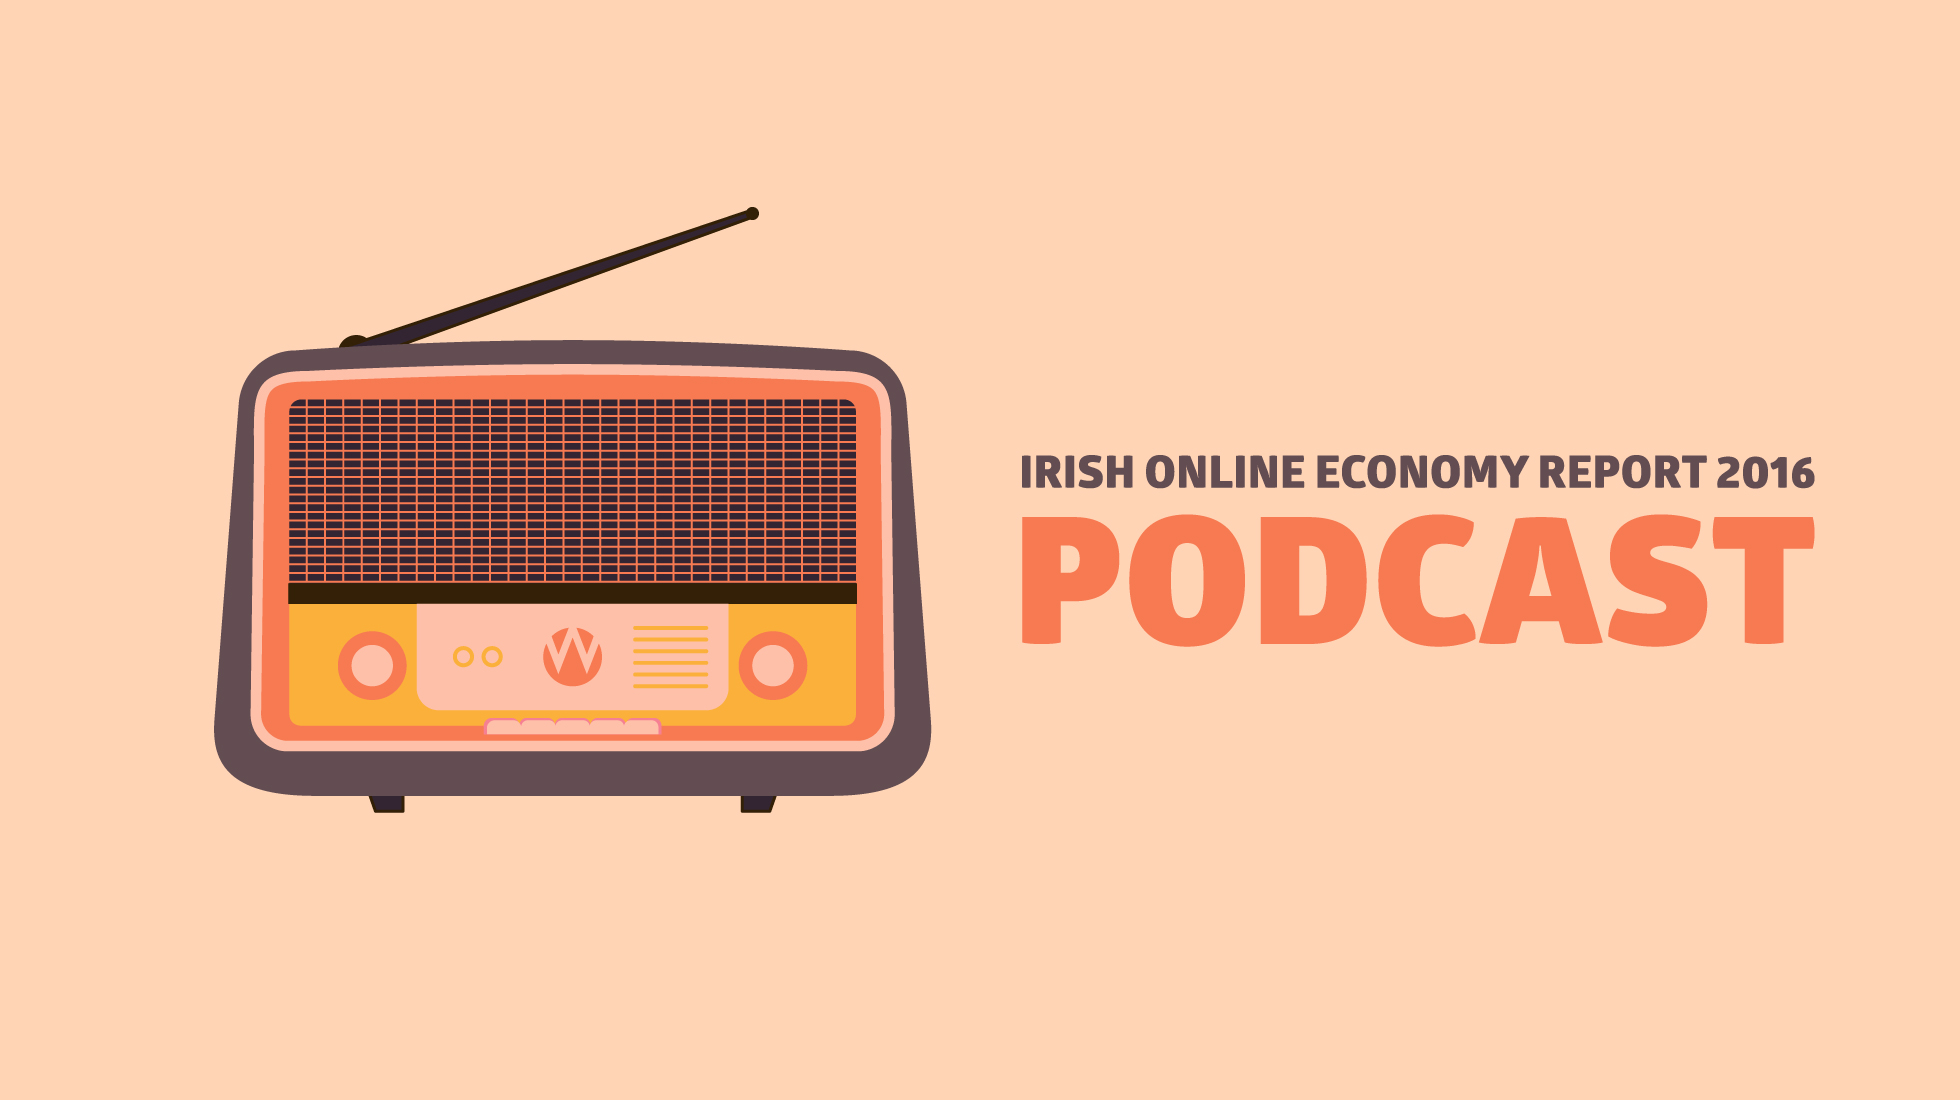 Wolfgang Digital's Online Economy Report 2016 podcast